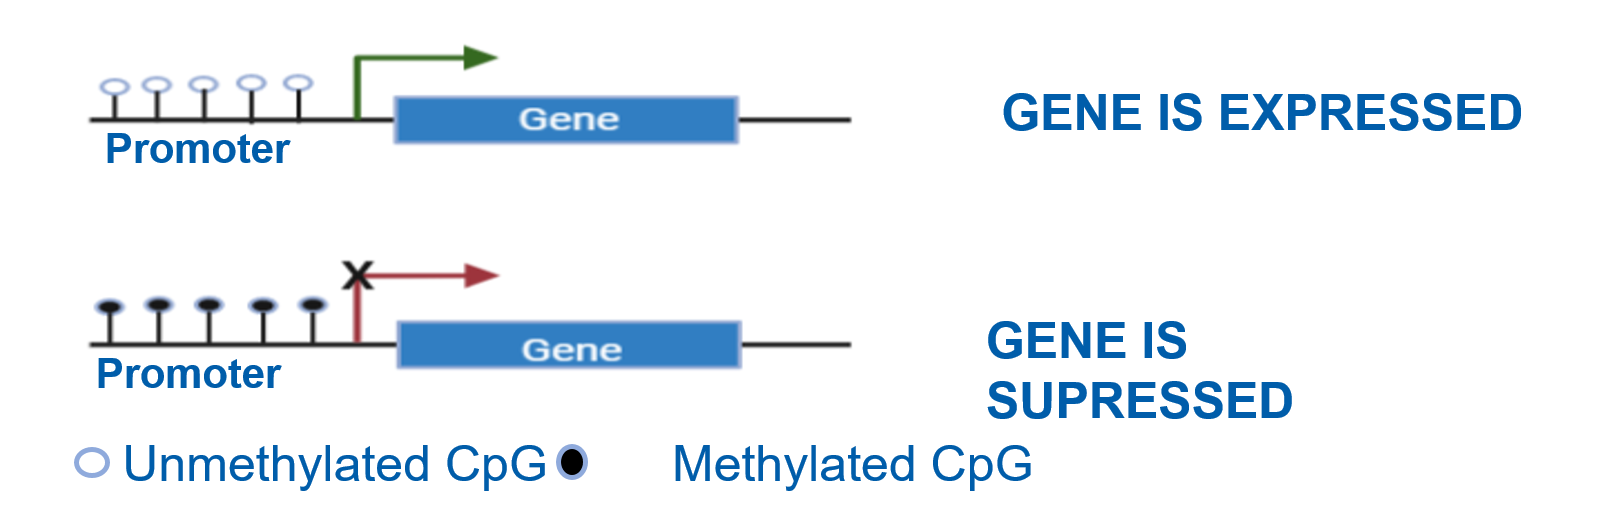 Unmethylated CpG promoter - gene is expressed. Methylated CpG - gene is supressed